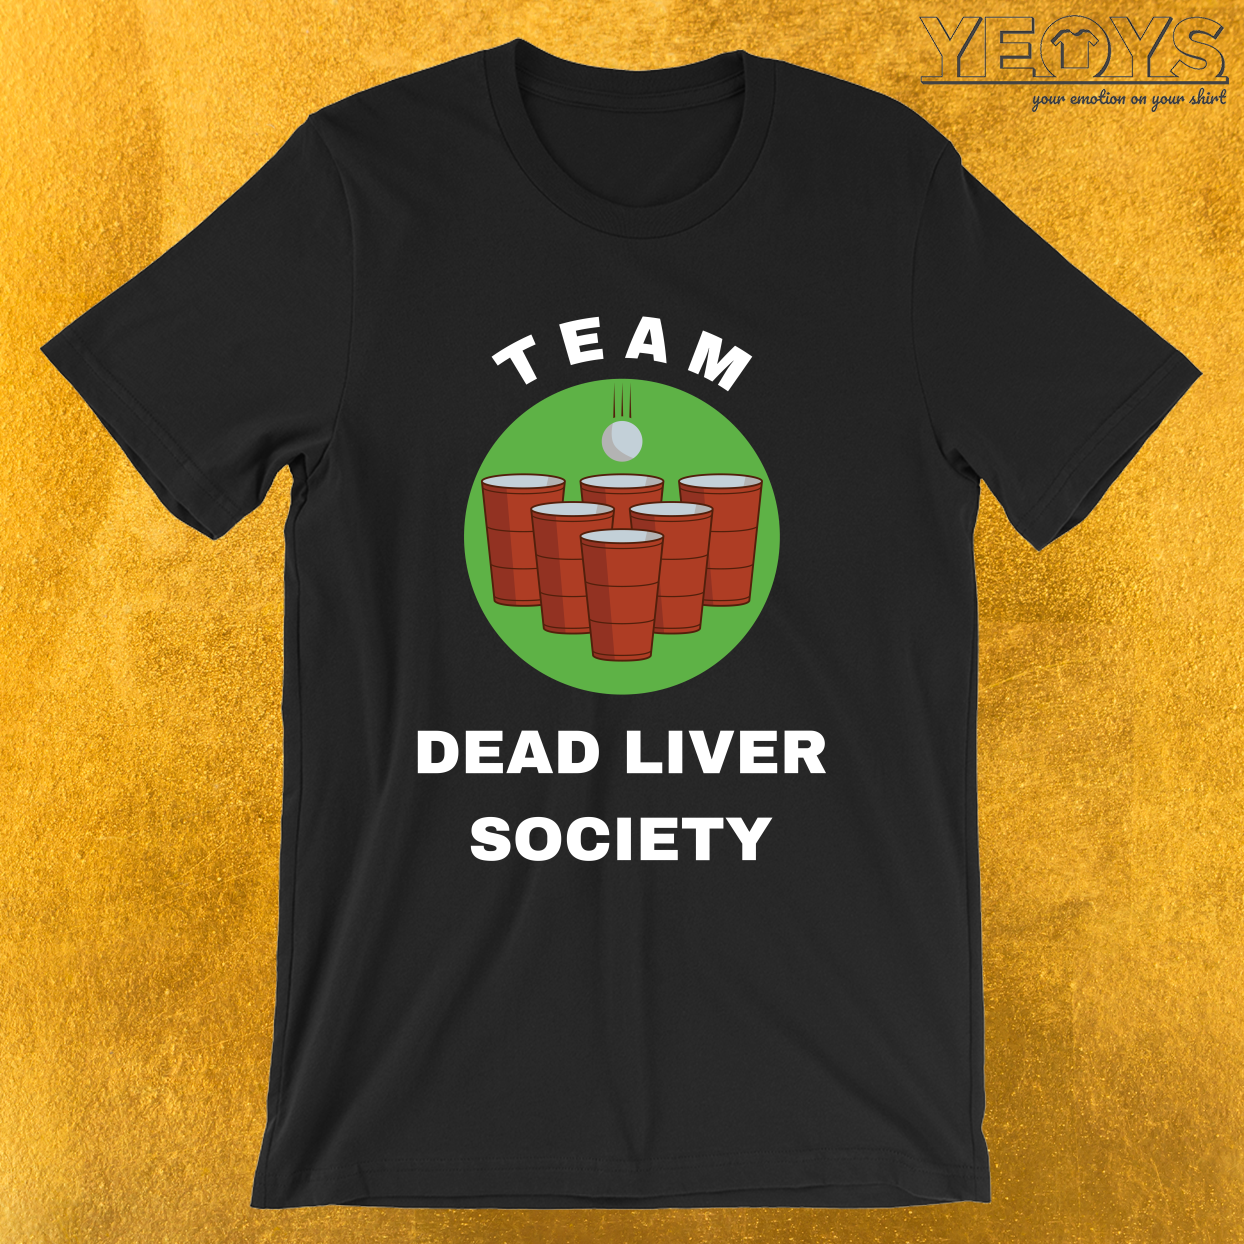 Team Dead Liver Society – USA Beer Pong Team Tee